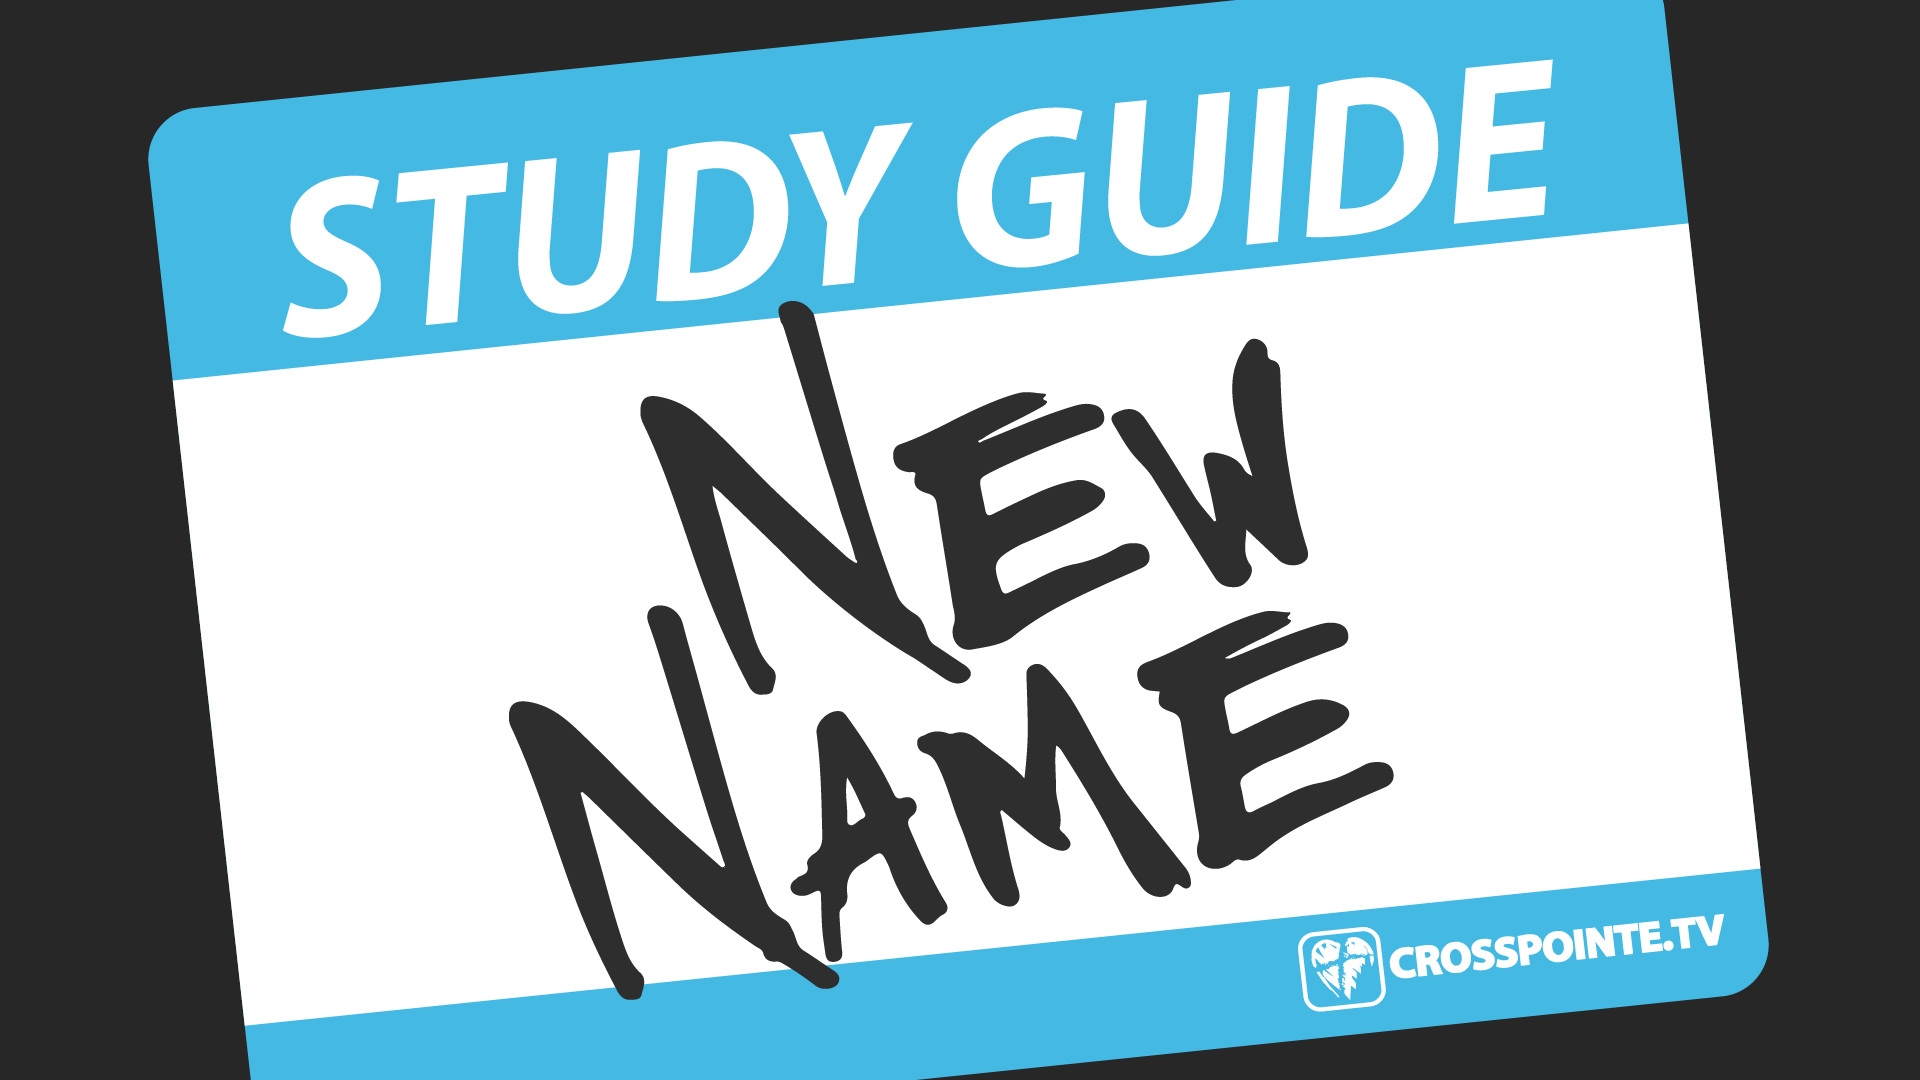 Download the Study Guide here